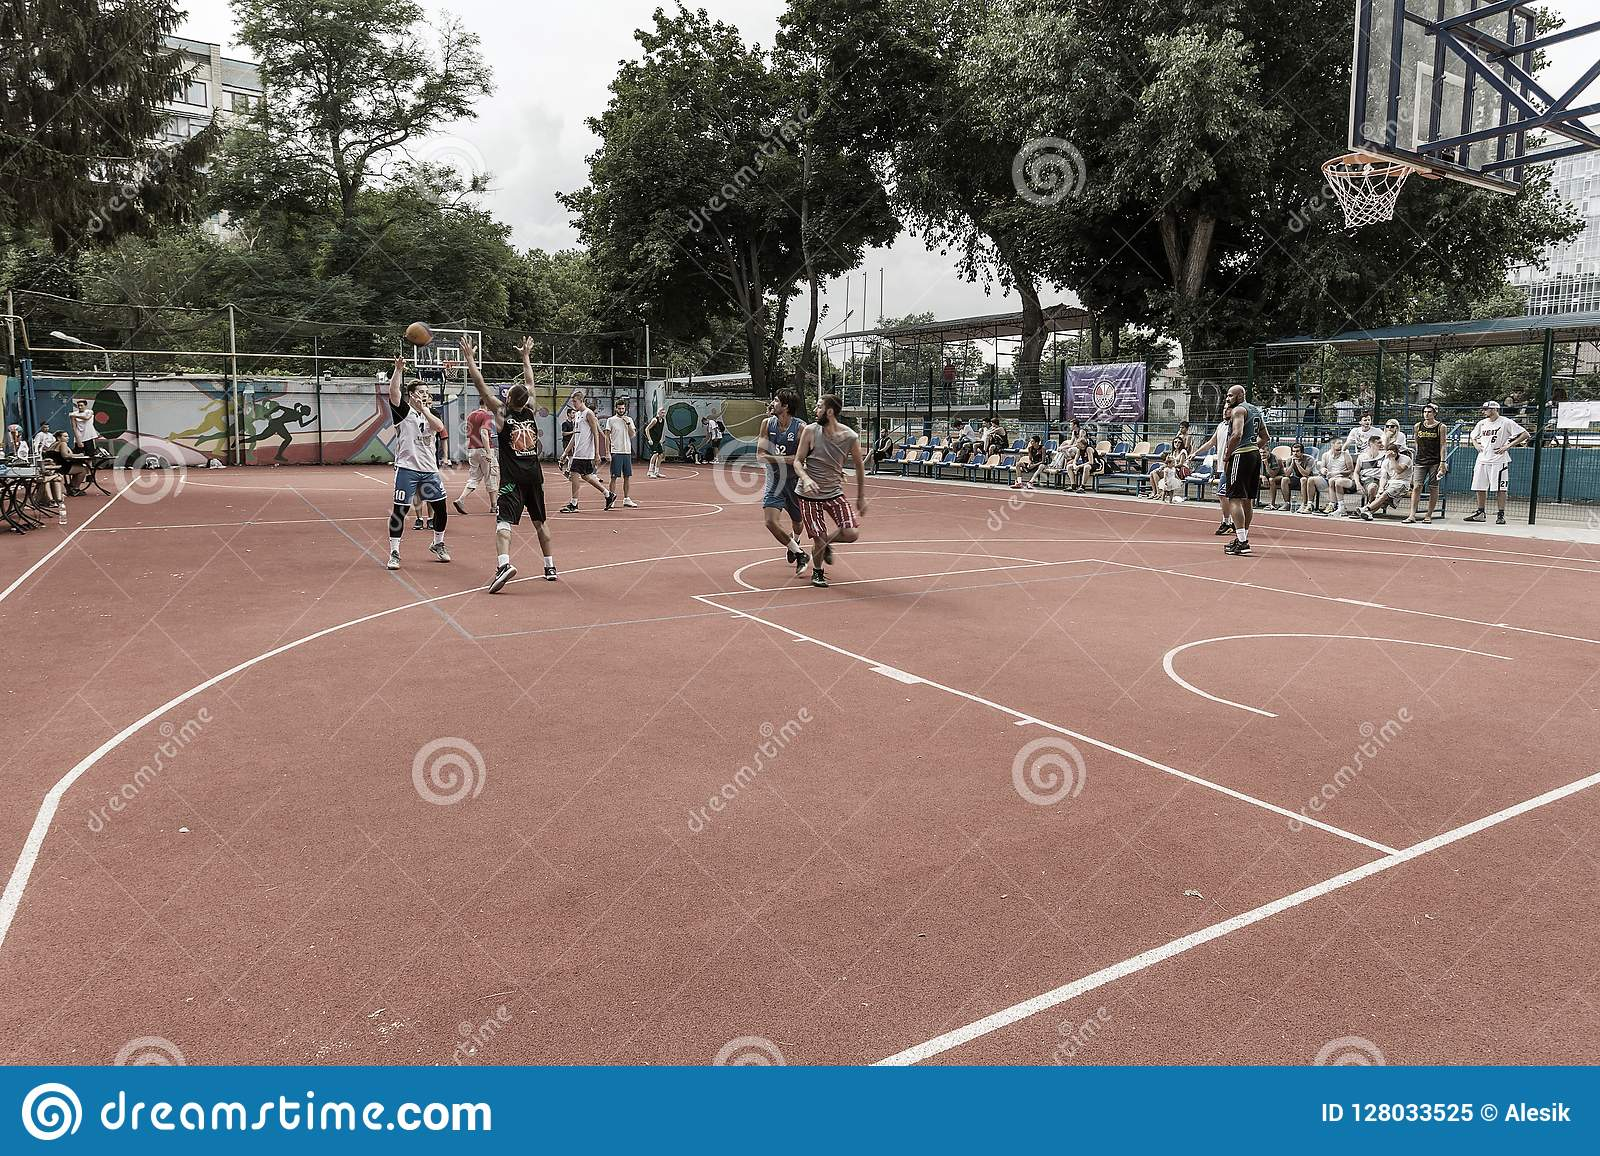 ODESSA, UKRAINE - JULY 28, 2018: Adolescents play basketball during 3x3 streetball championship. Young people play street basketba